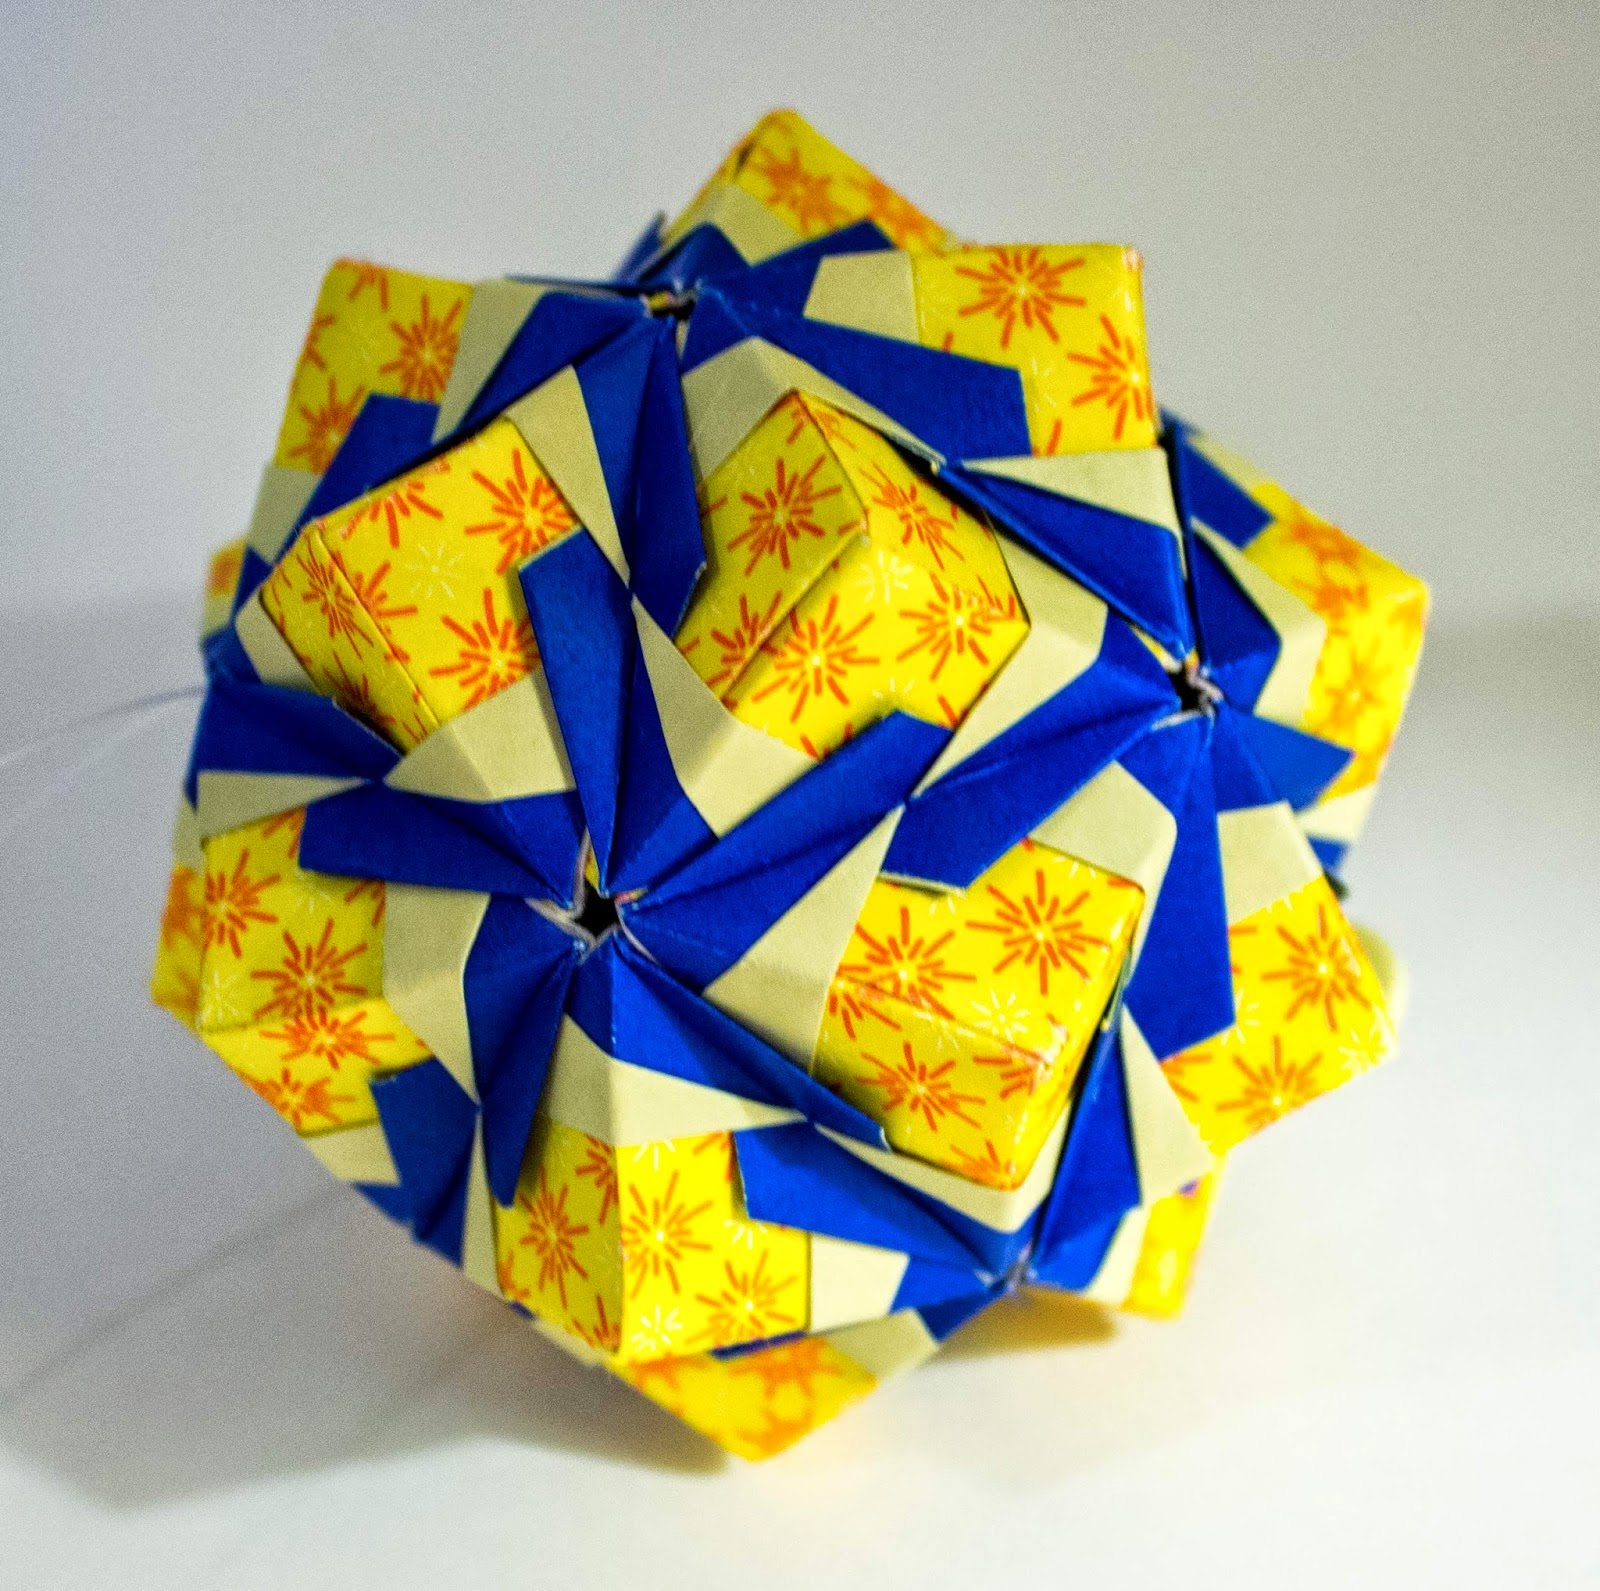 hight resolution of floral origami globes tomoko fuse pdf download